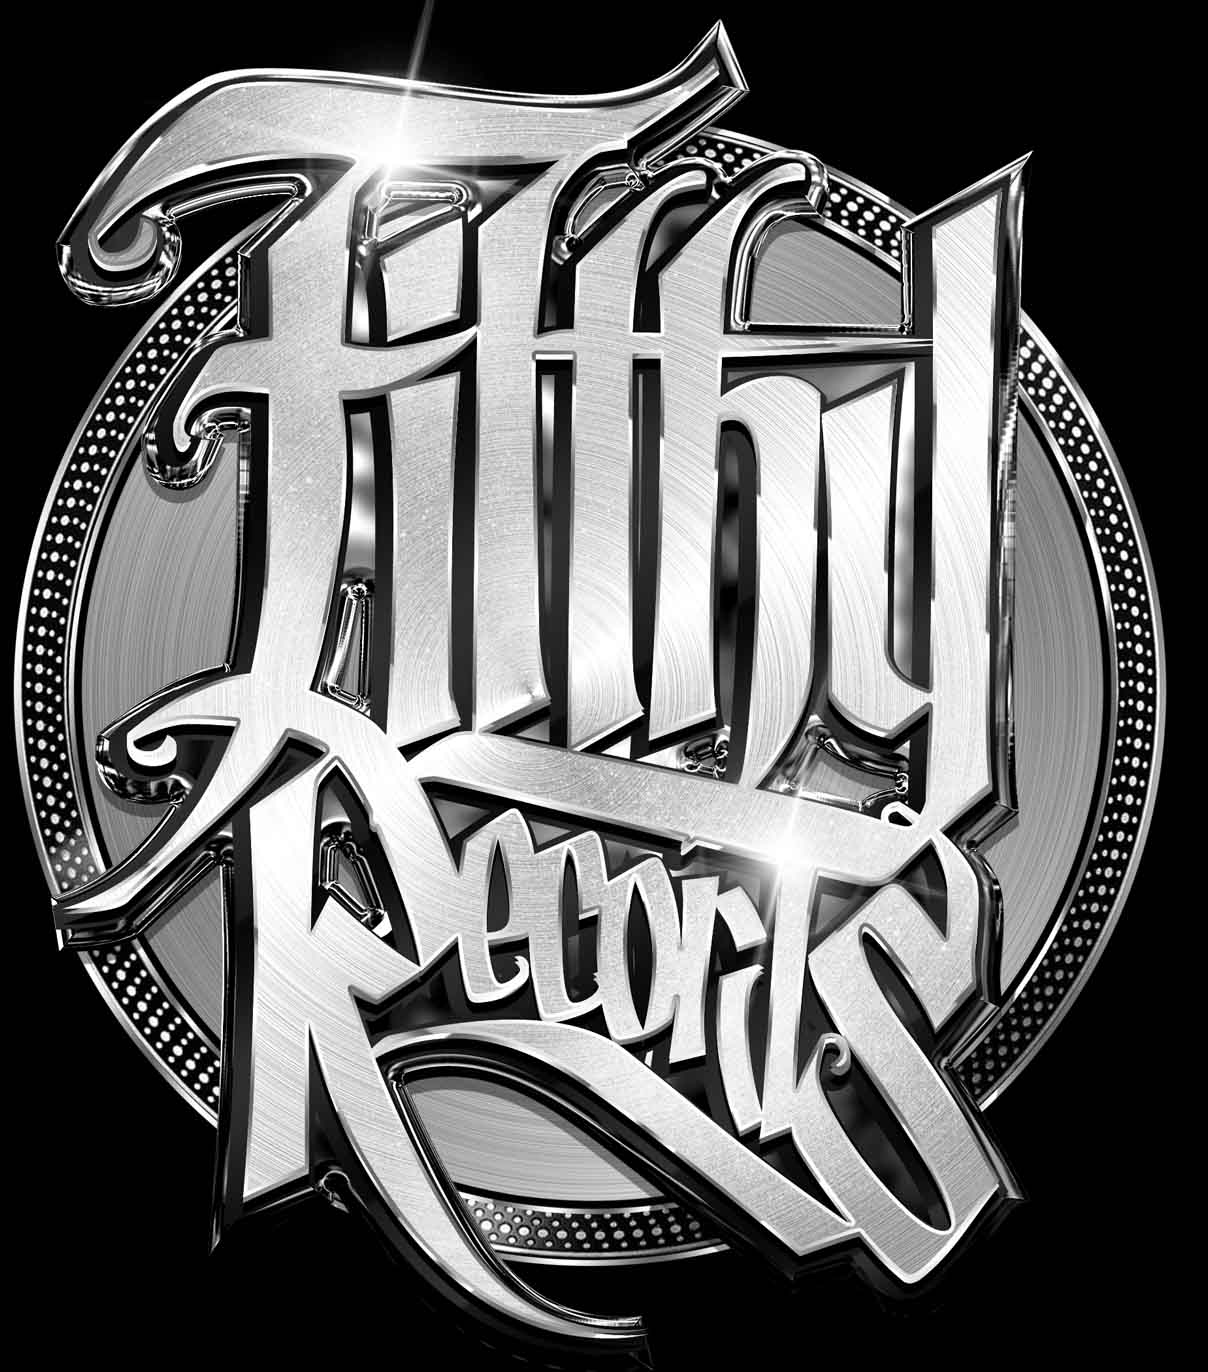 Filthy Records